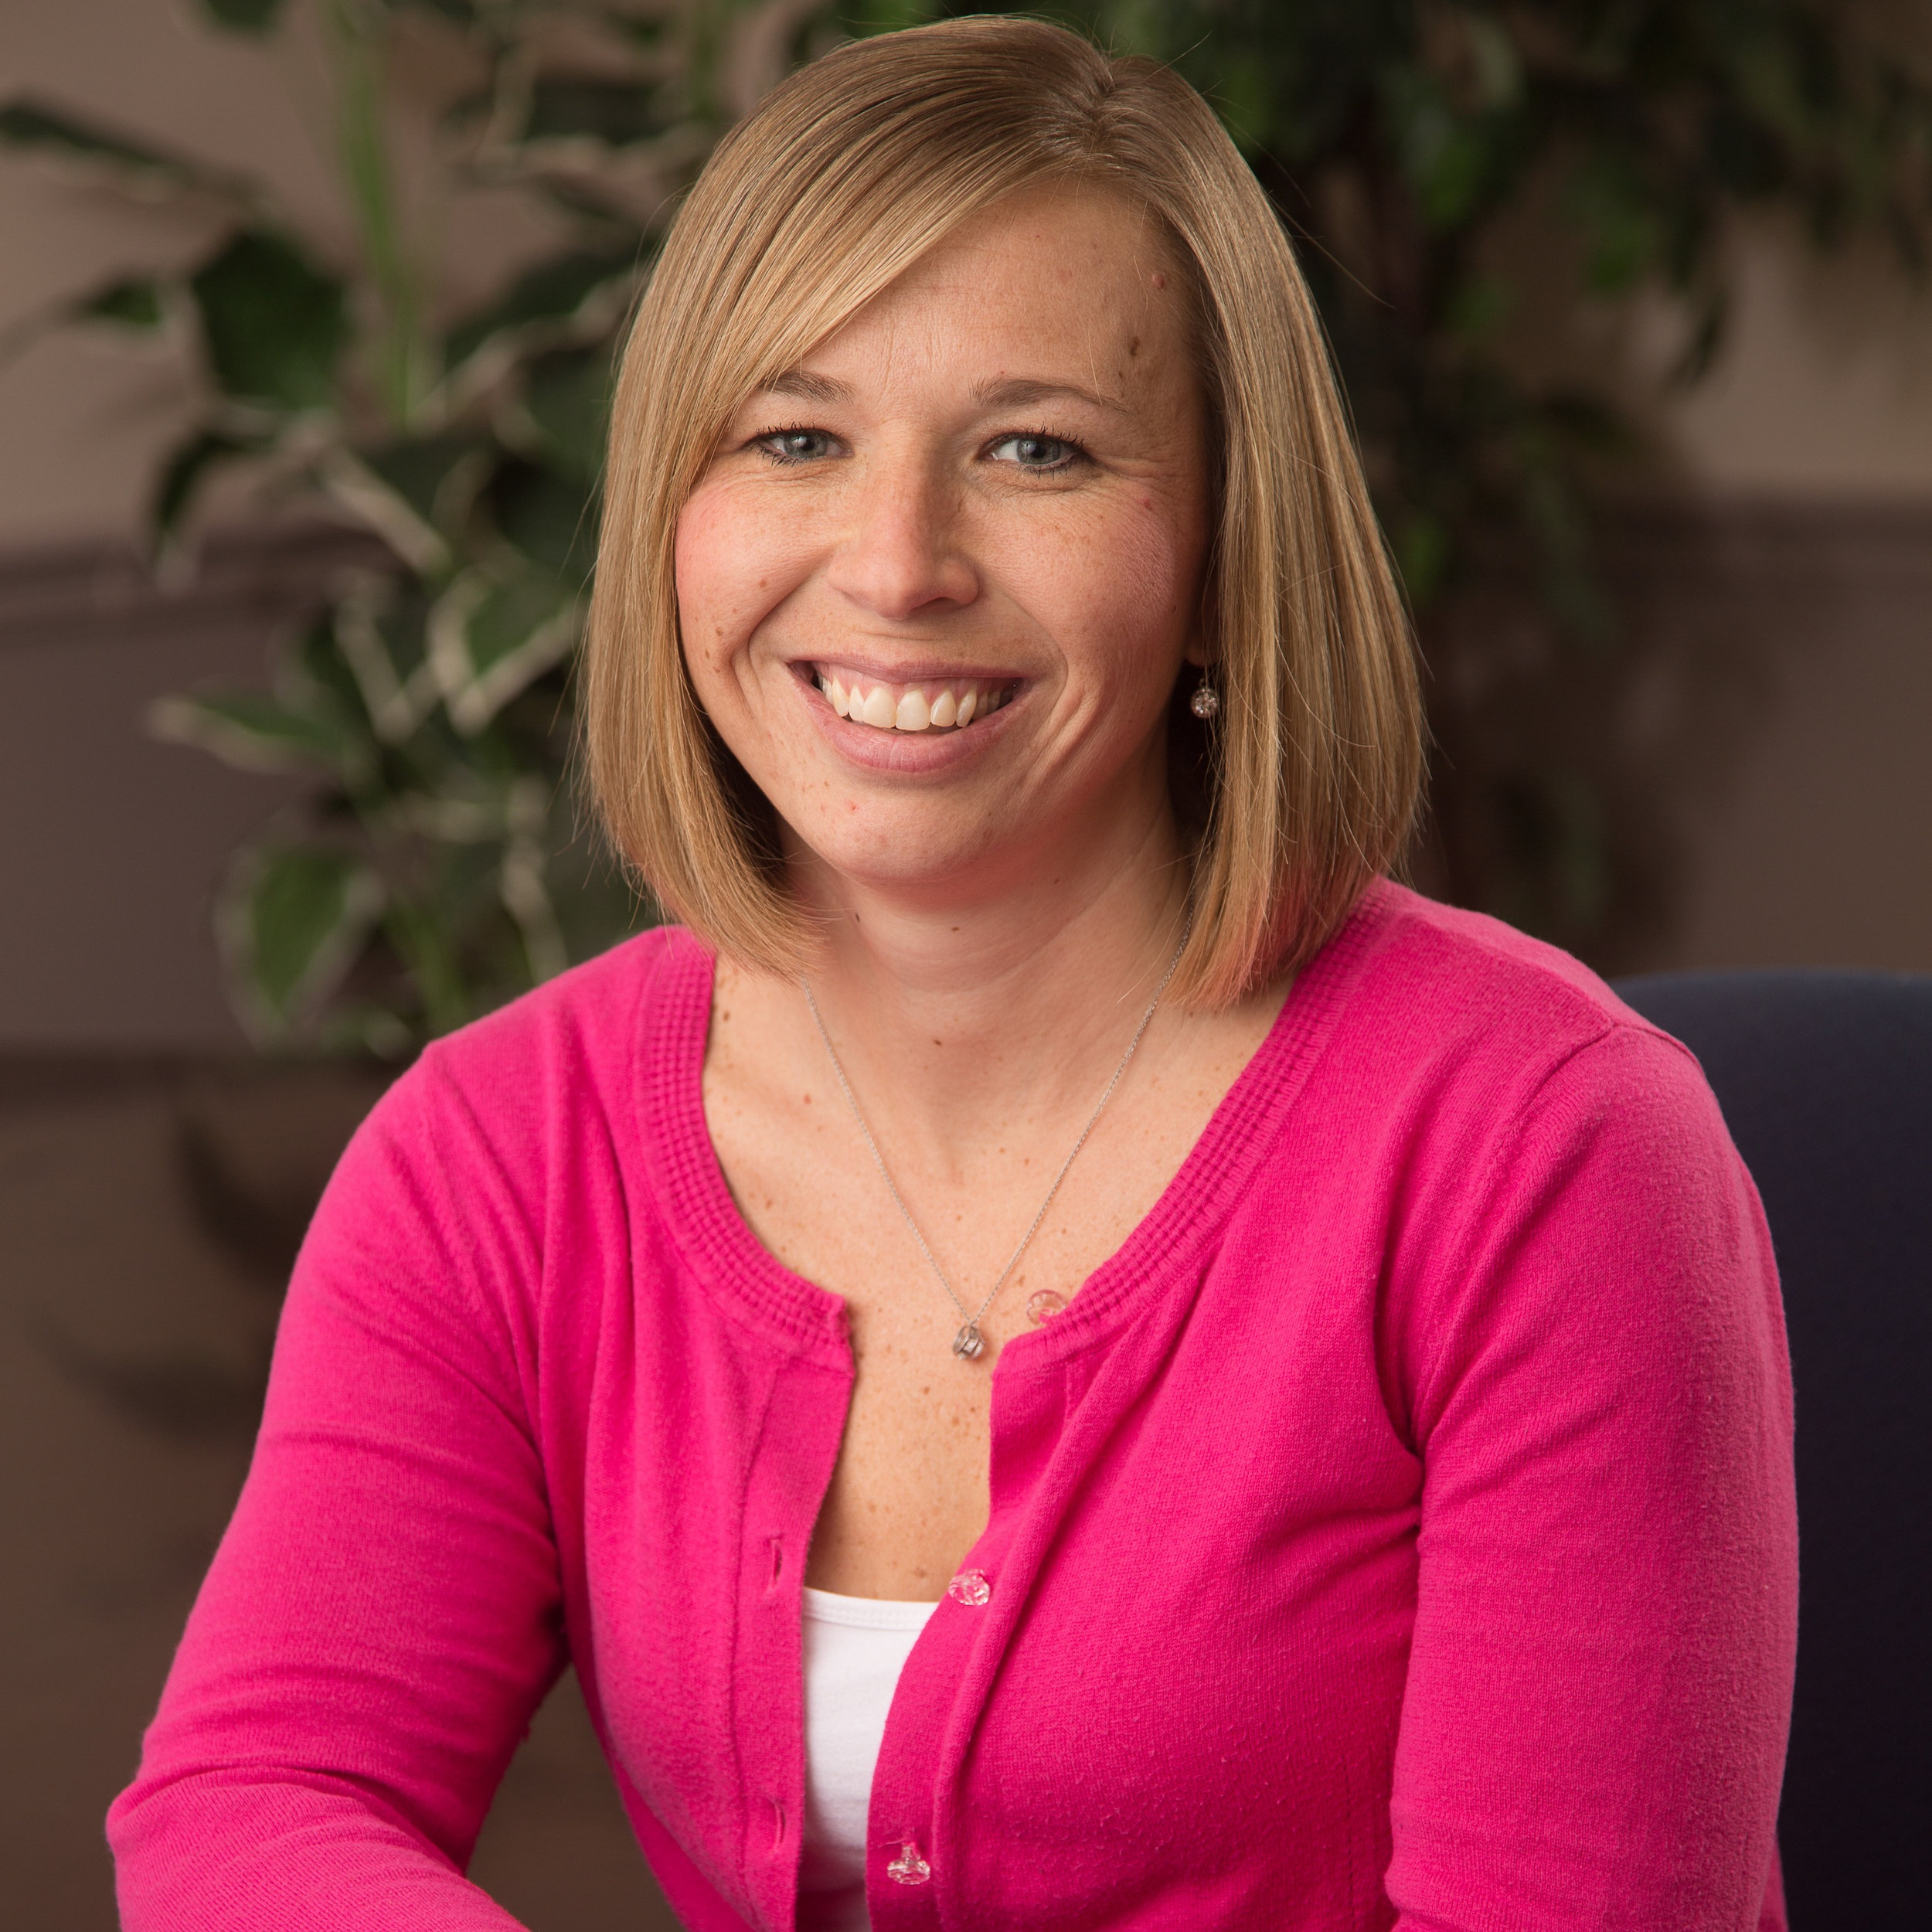 Brandi Hesson - Brandi is an Information & Assistance Specialist for Buckeye Hills Regional Council and has been in her current position since October 2008.